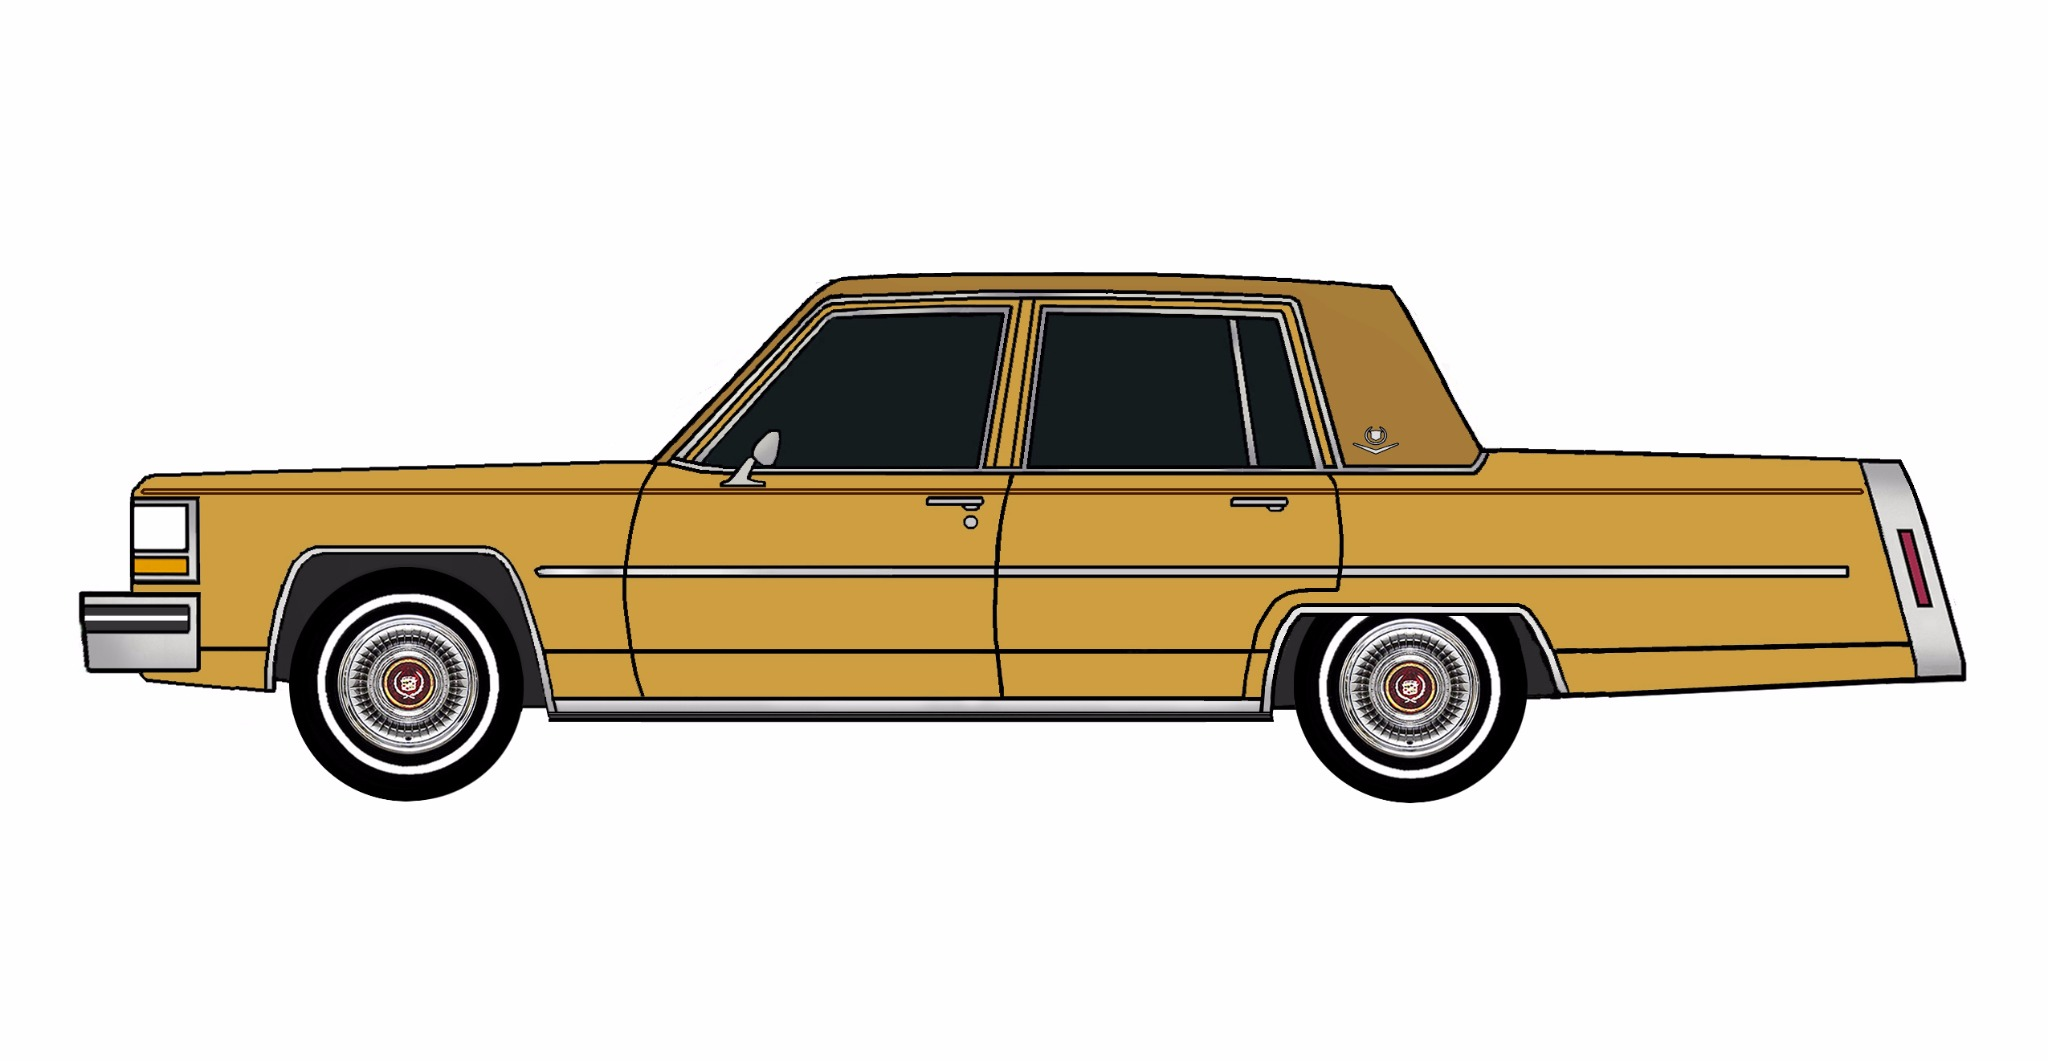 1981 Cadillac Deville INDIAN YELLOW